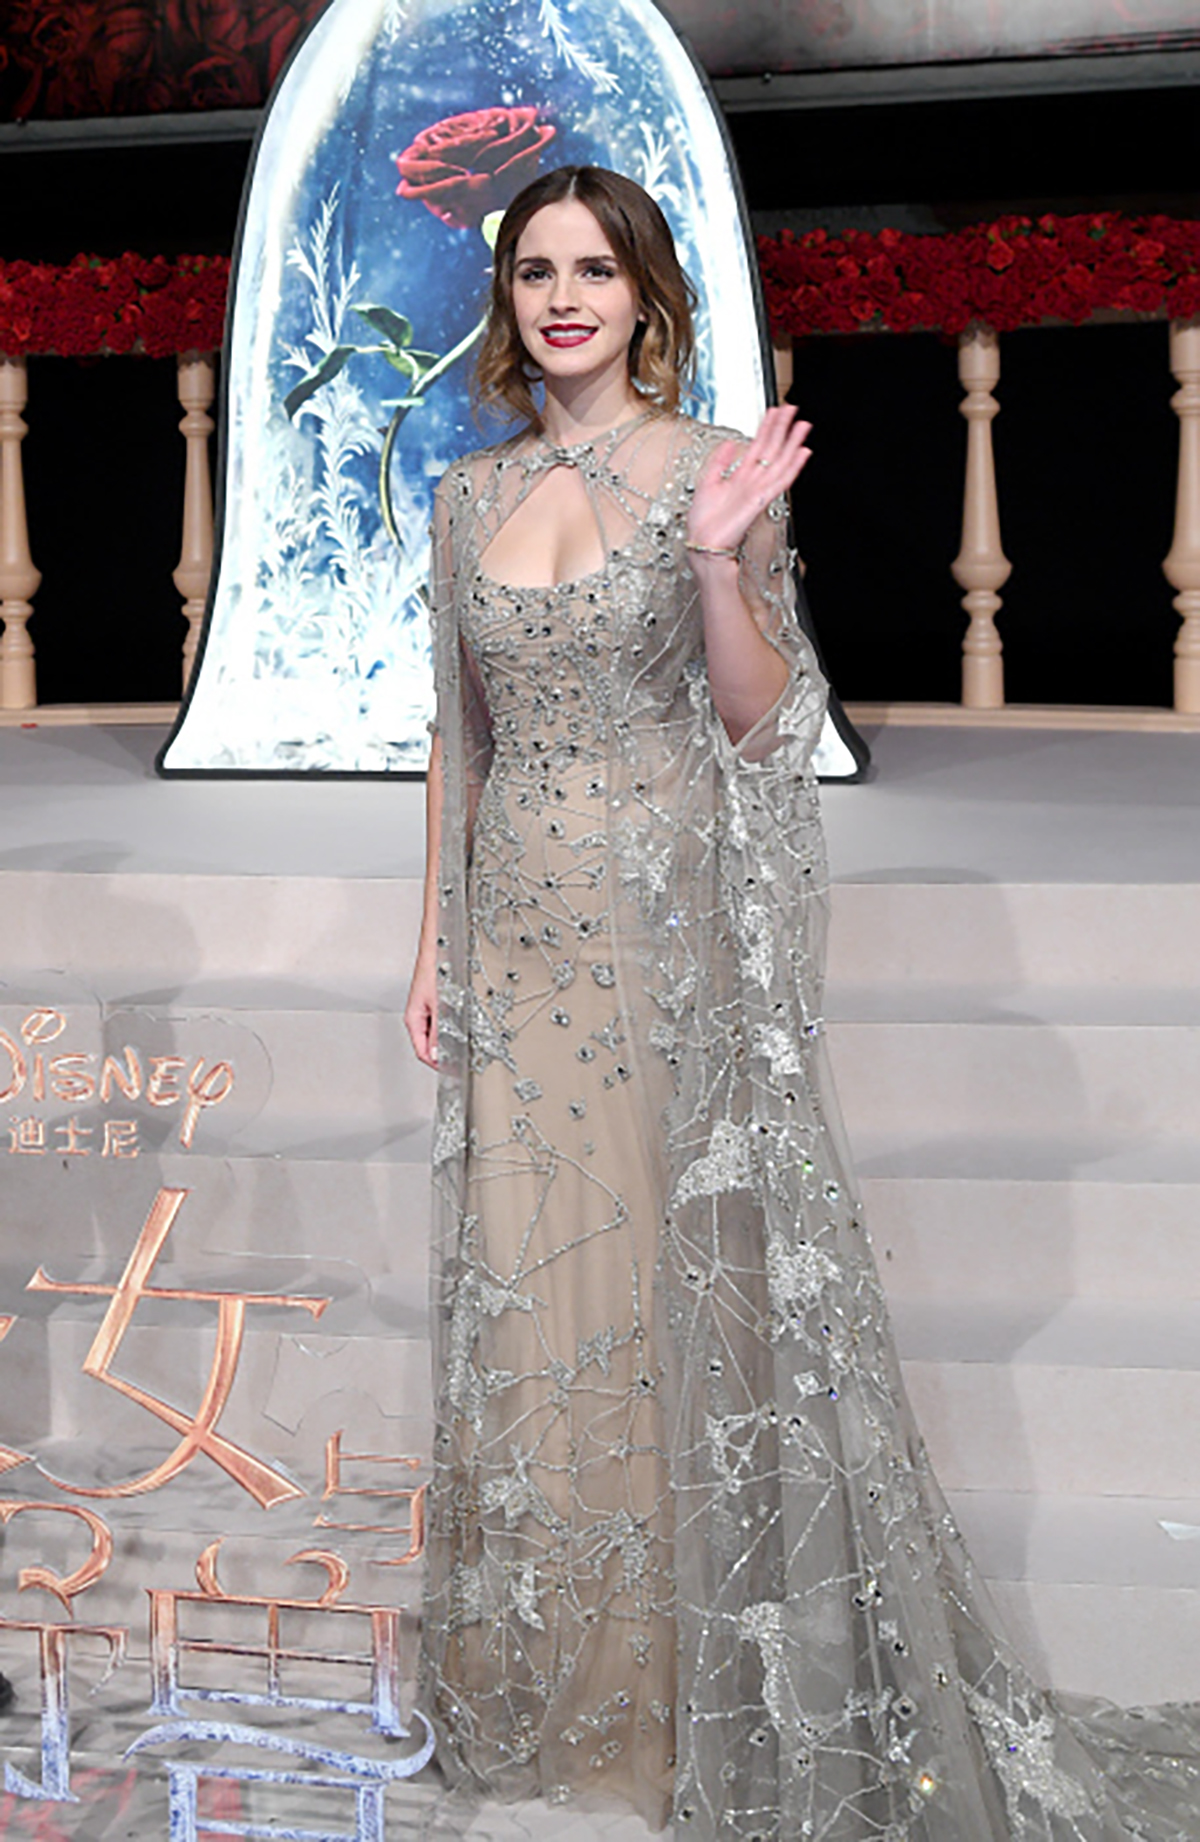 7. Actress Emma Watson attends a premiere for movie Beauty and the Beast in Shanghai,. ¿TBT a Harry Potter 4?